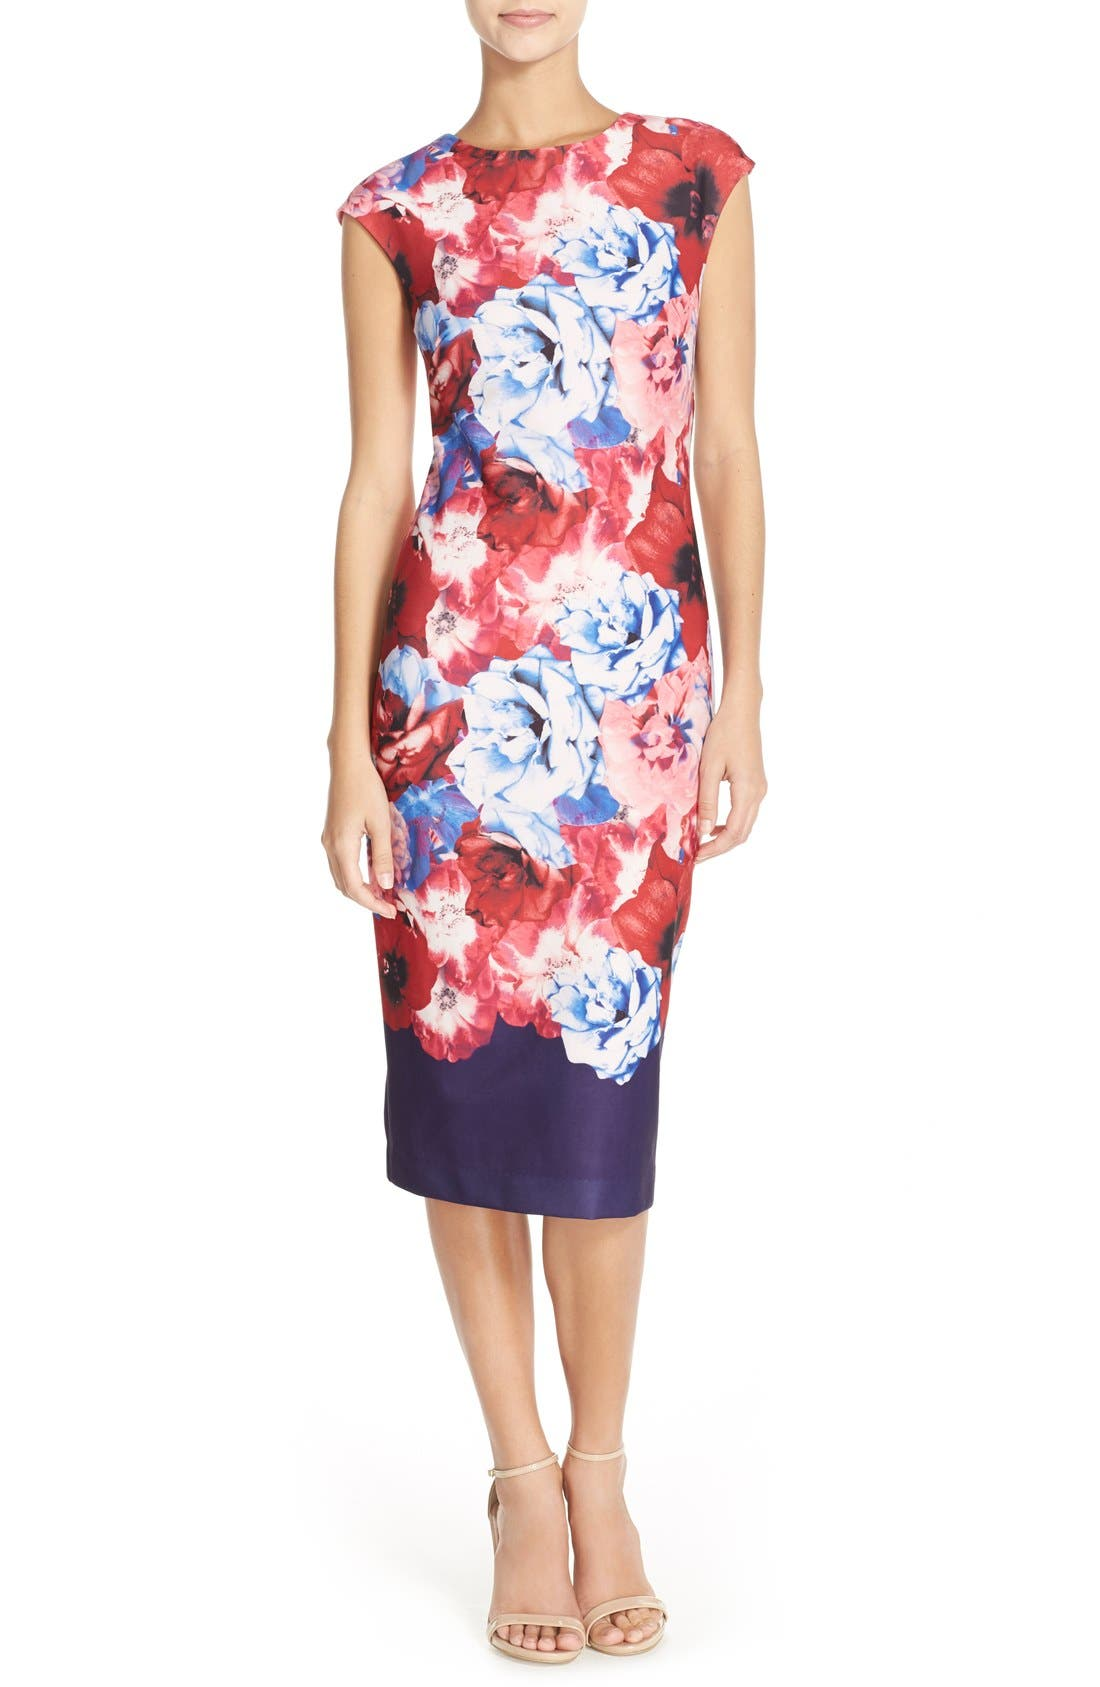 Main Image - Vince Camuto Floral Print Stretch Midi Dress (Regular & Petite)